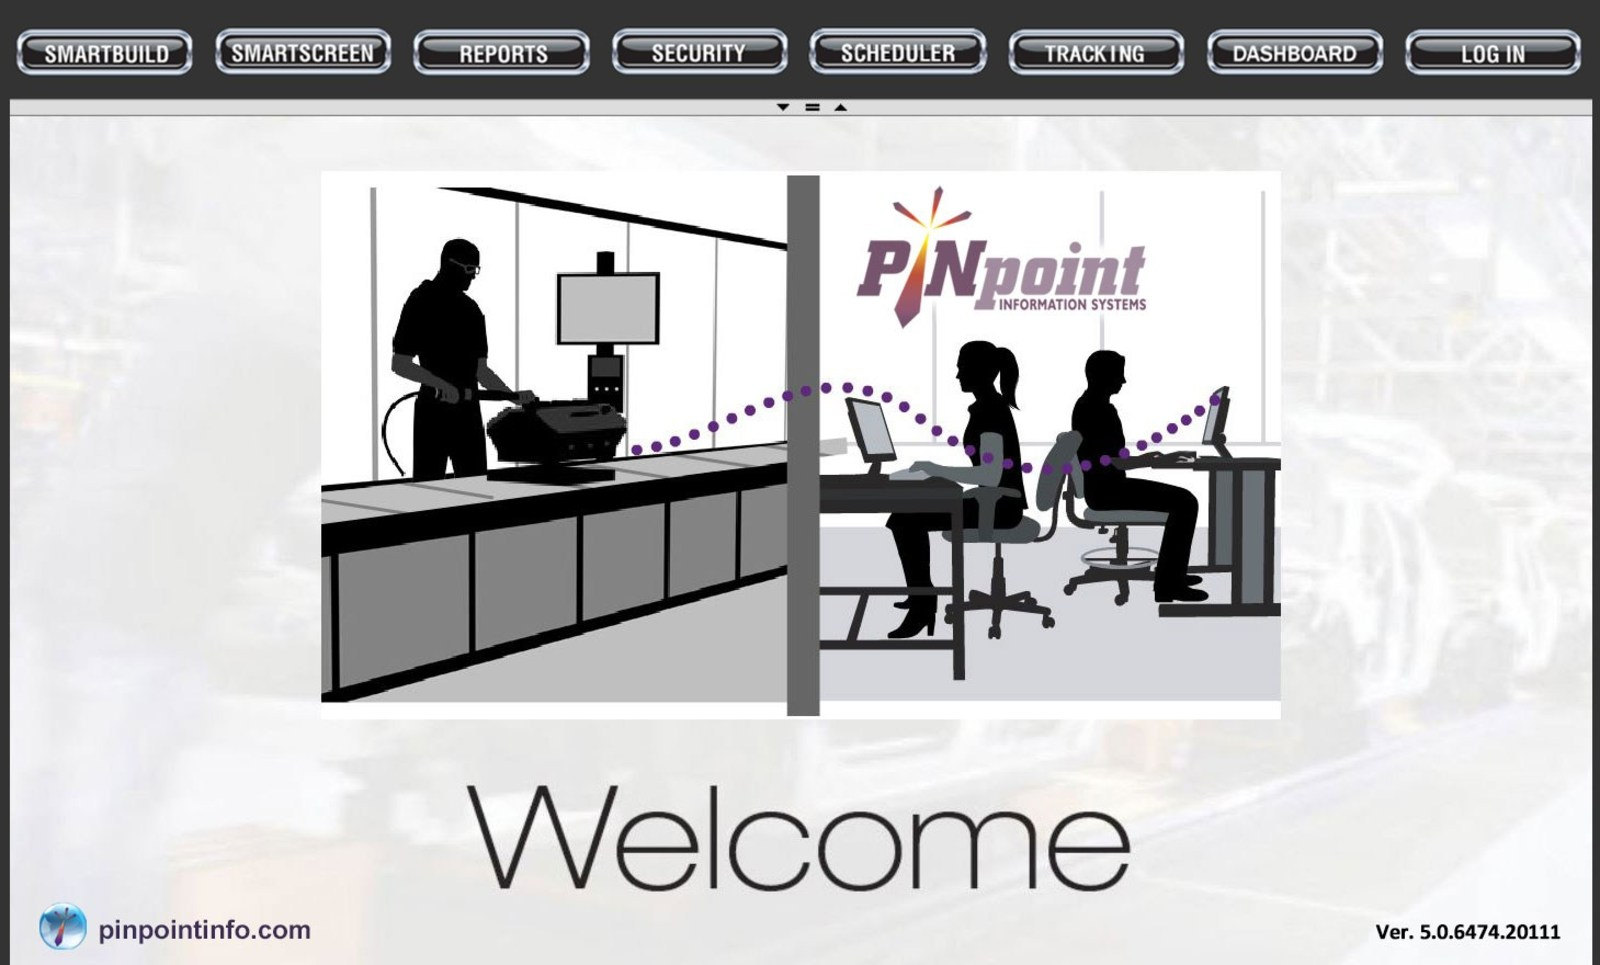 PINpoint V5 MES Welcome Screen (PINpoint Portal/Home Website). The PINpoint Portal features various apps in the top menu; a broad toolset of manufacturing execution tools that's all-encompassing to maximize quality an efficiency.